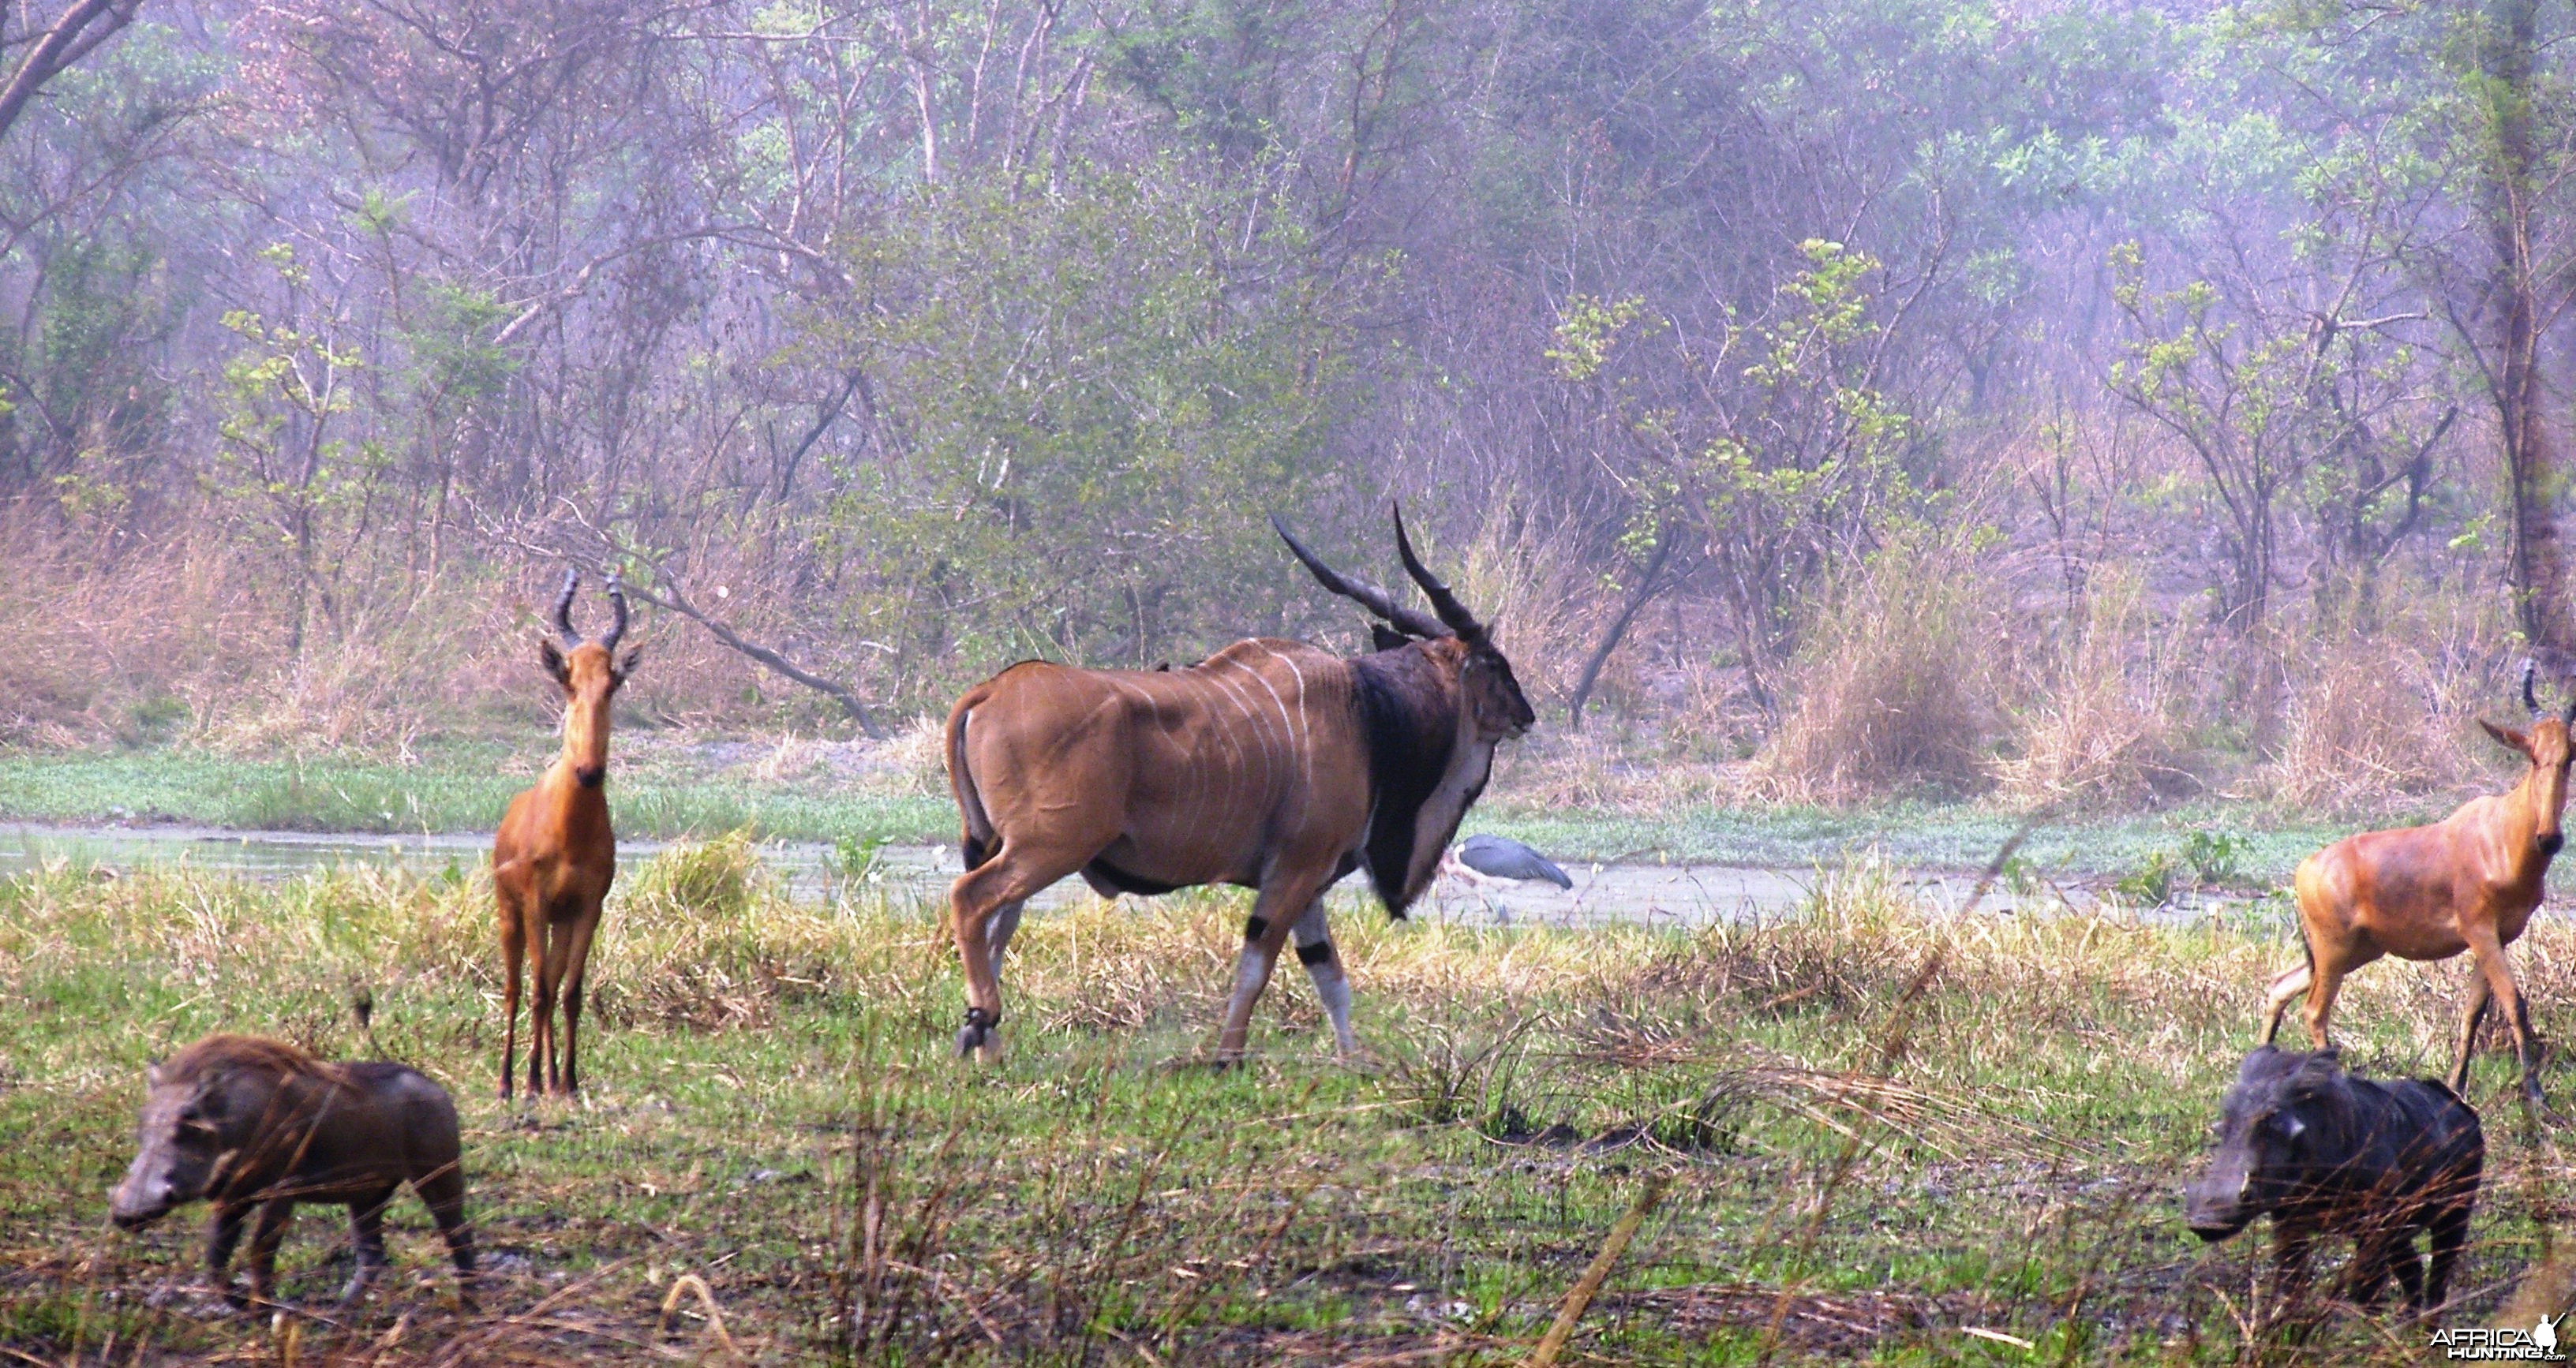 Lord Derby Eland Bull in Central Africa